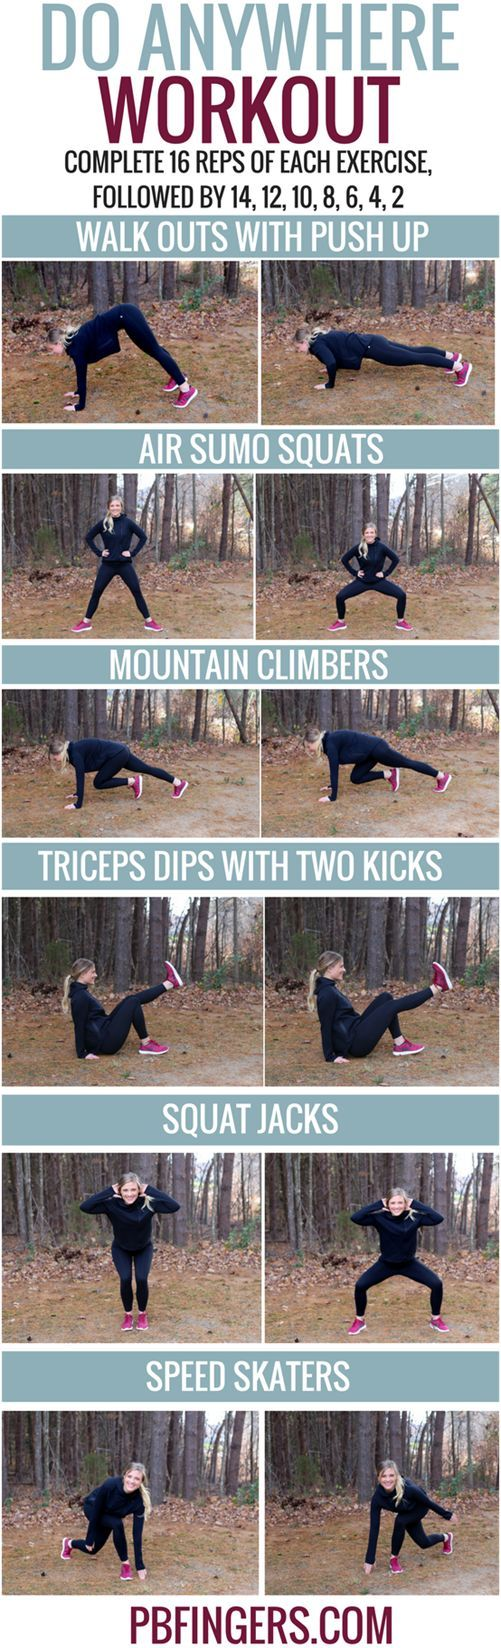 TRAVEL - Do Anywhere Workout